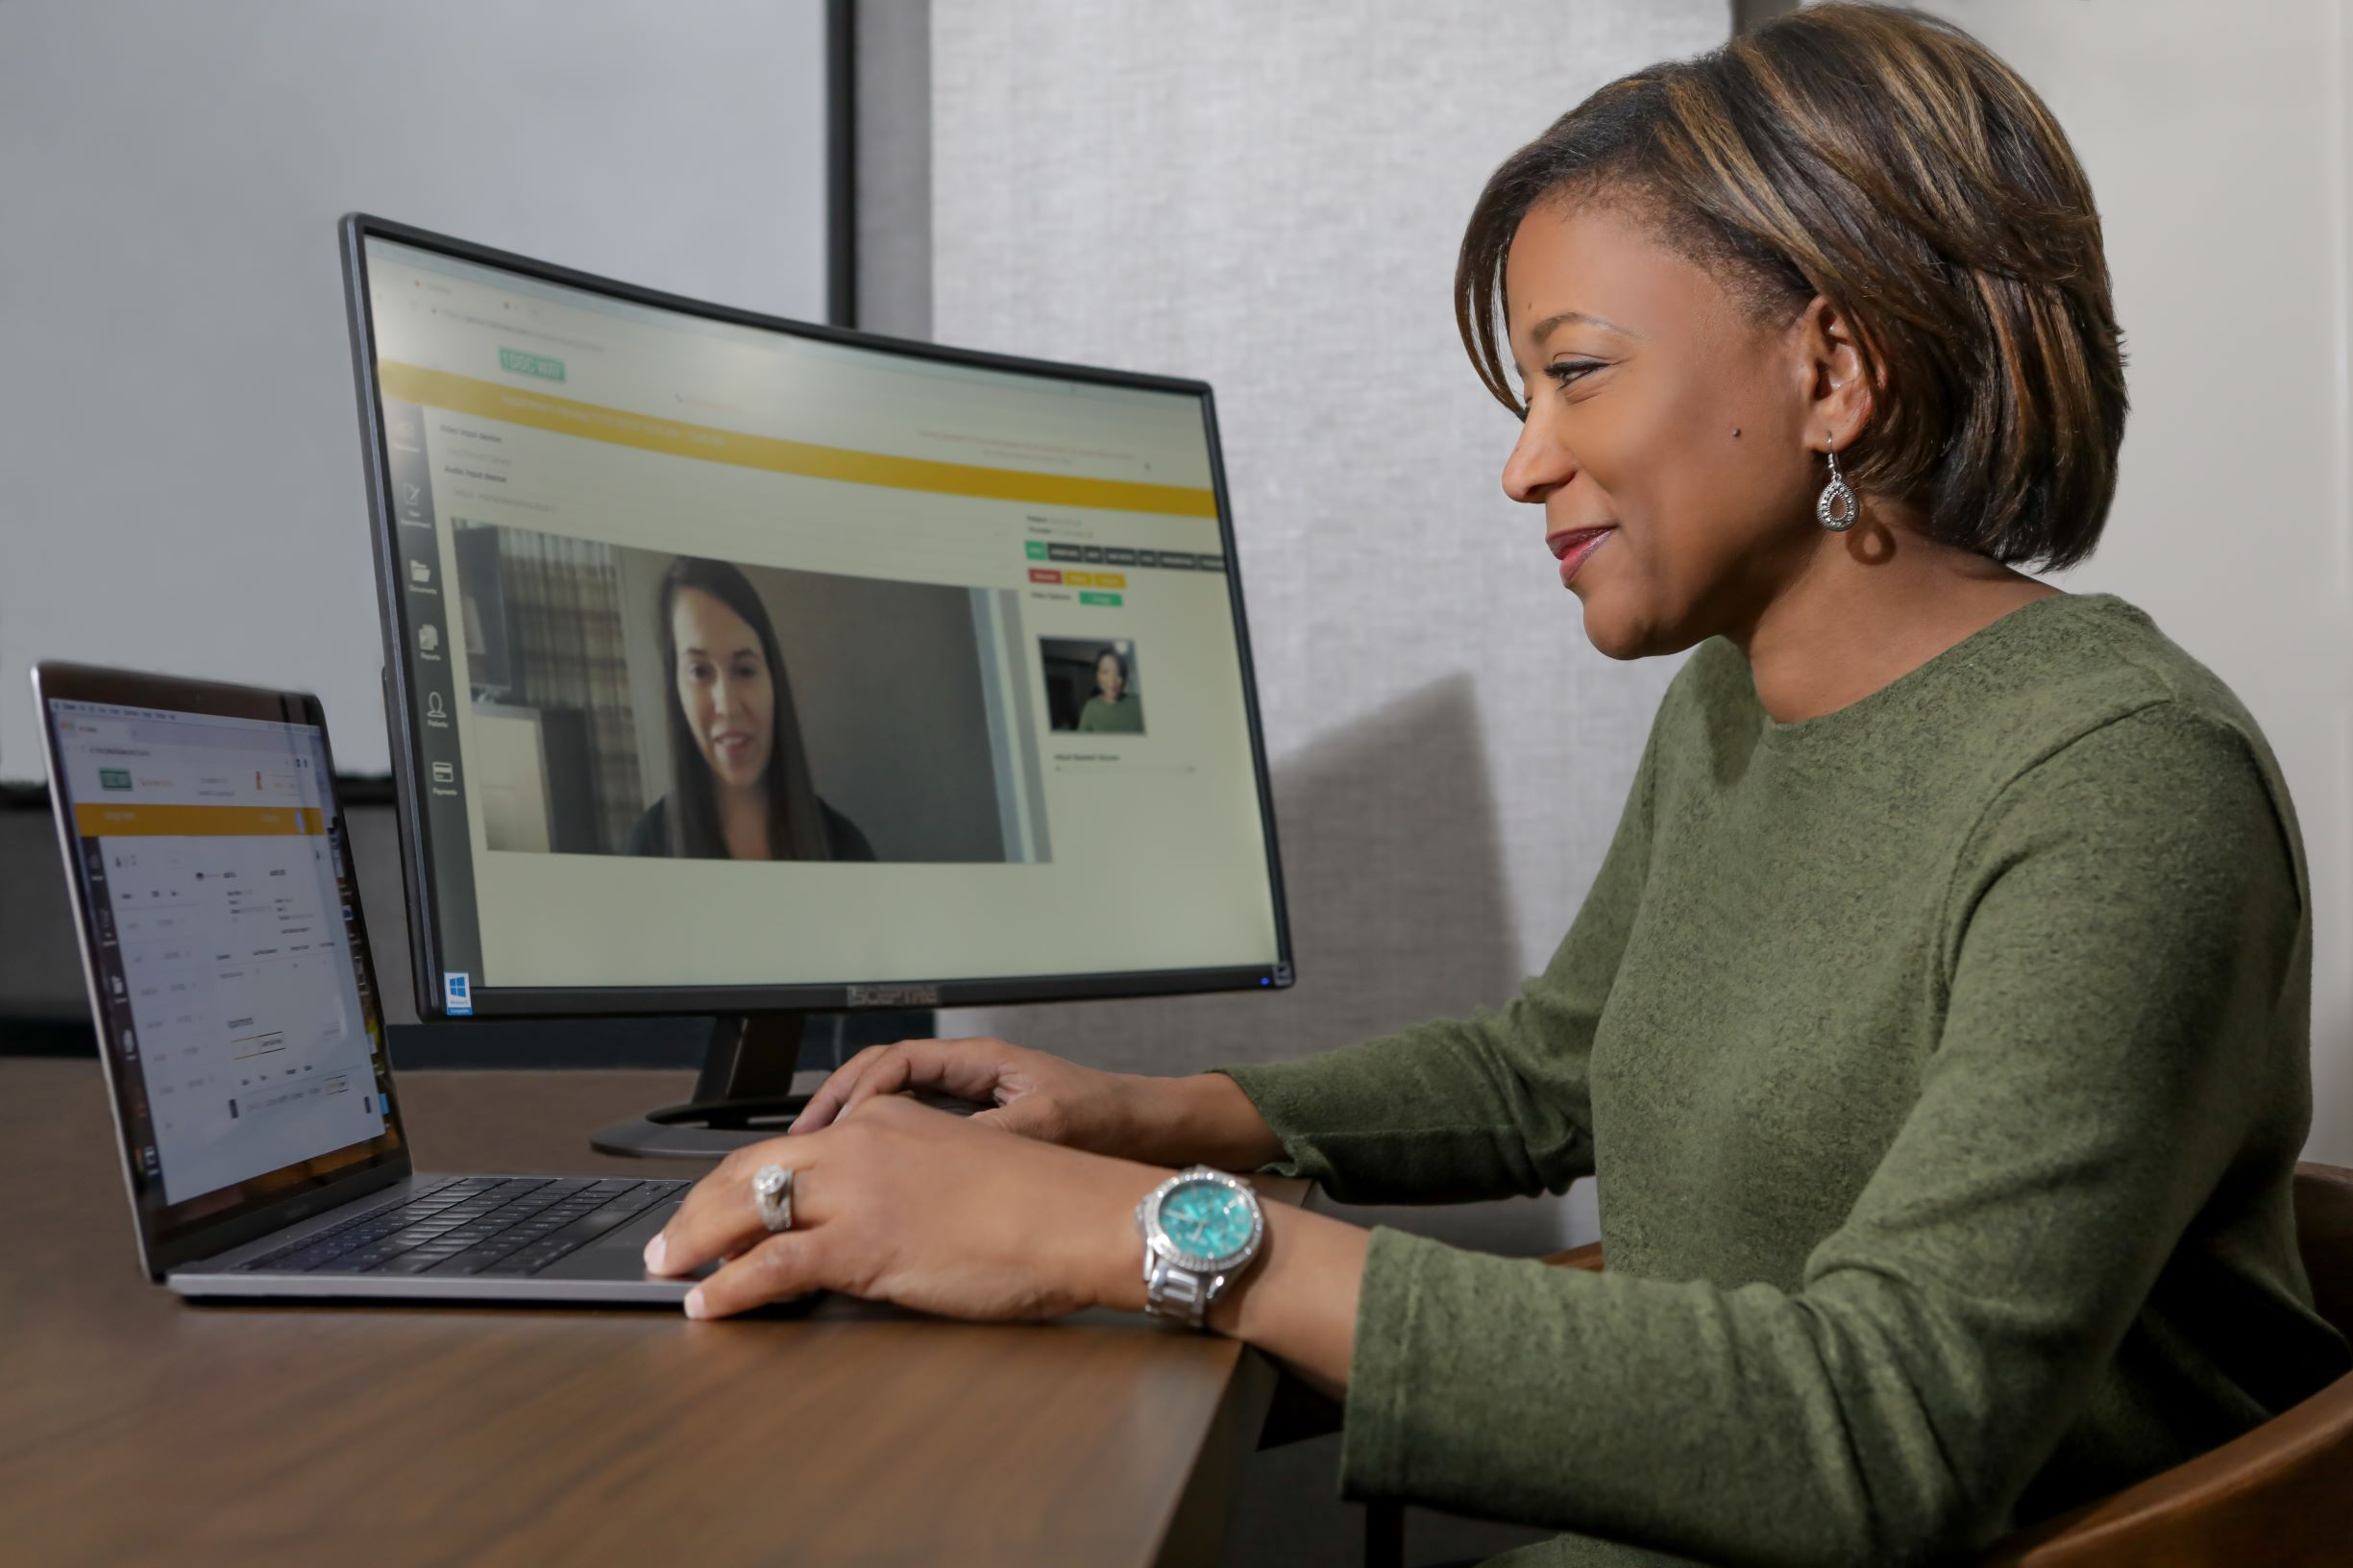 Telepsychiatry Improves Access to Mental Health Care in Rural Areas